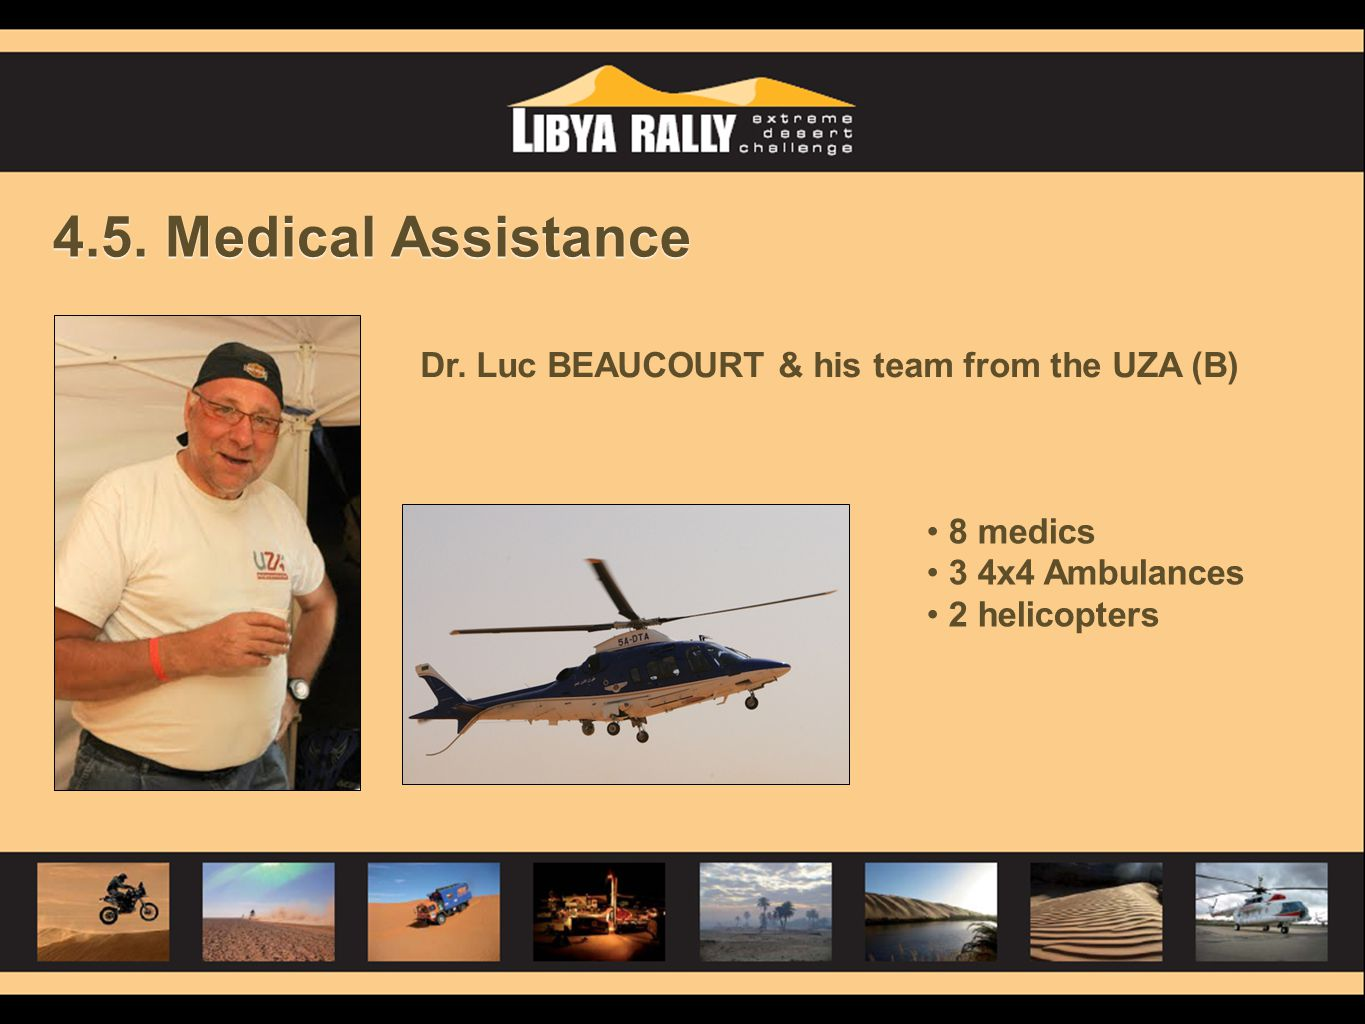 4.5. Medical Assistance Dr. Luc BEAUCOURT & his team from the UZA (B)